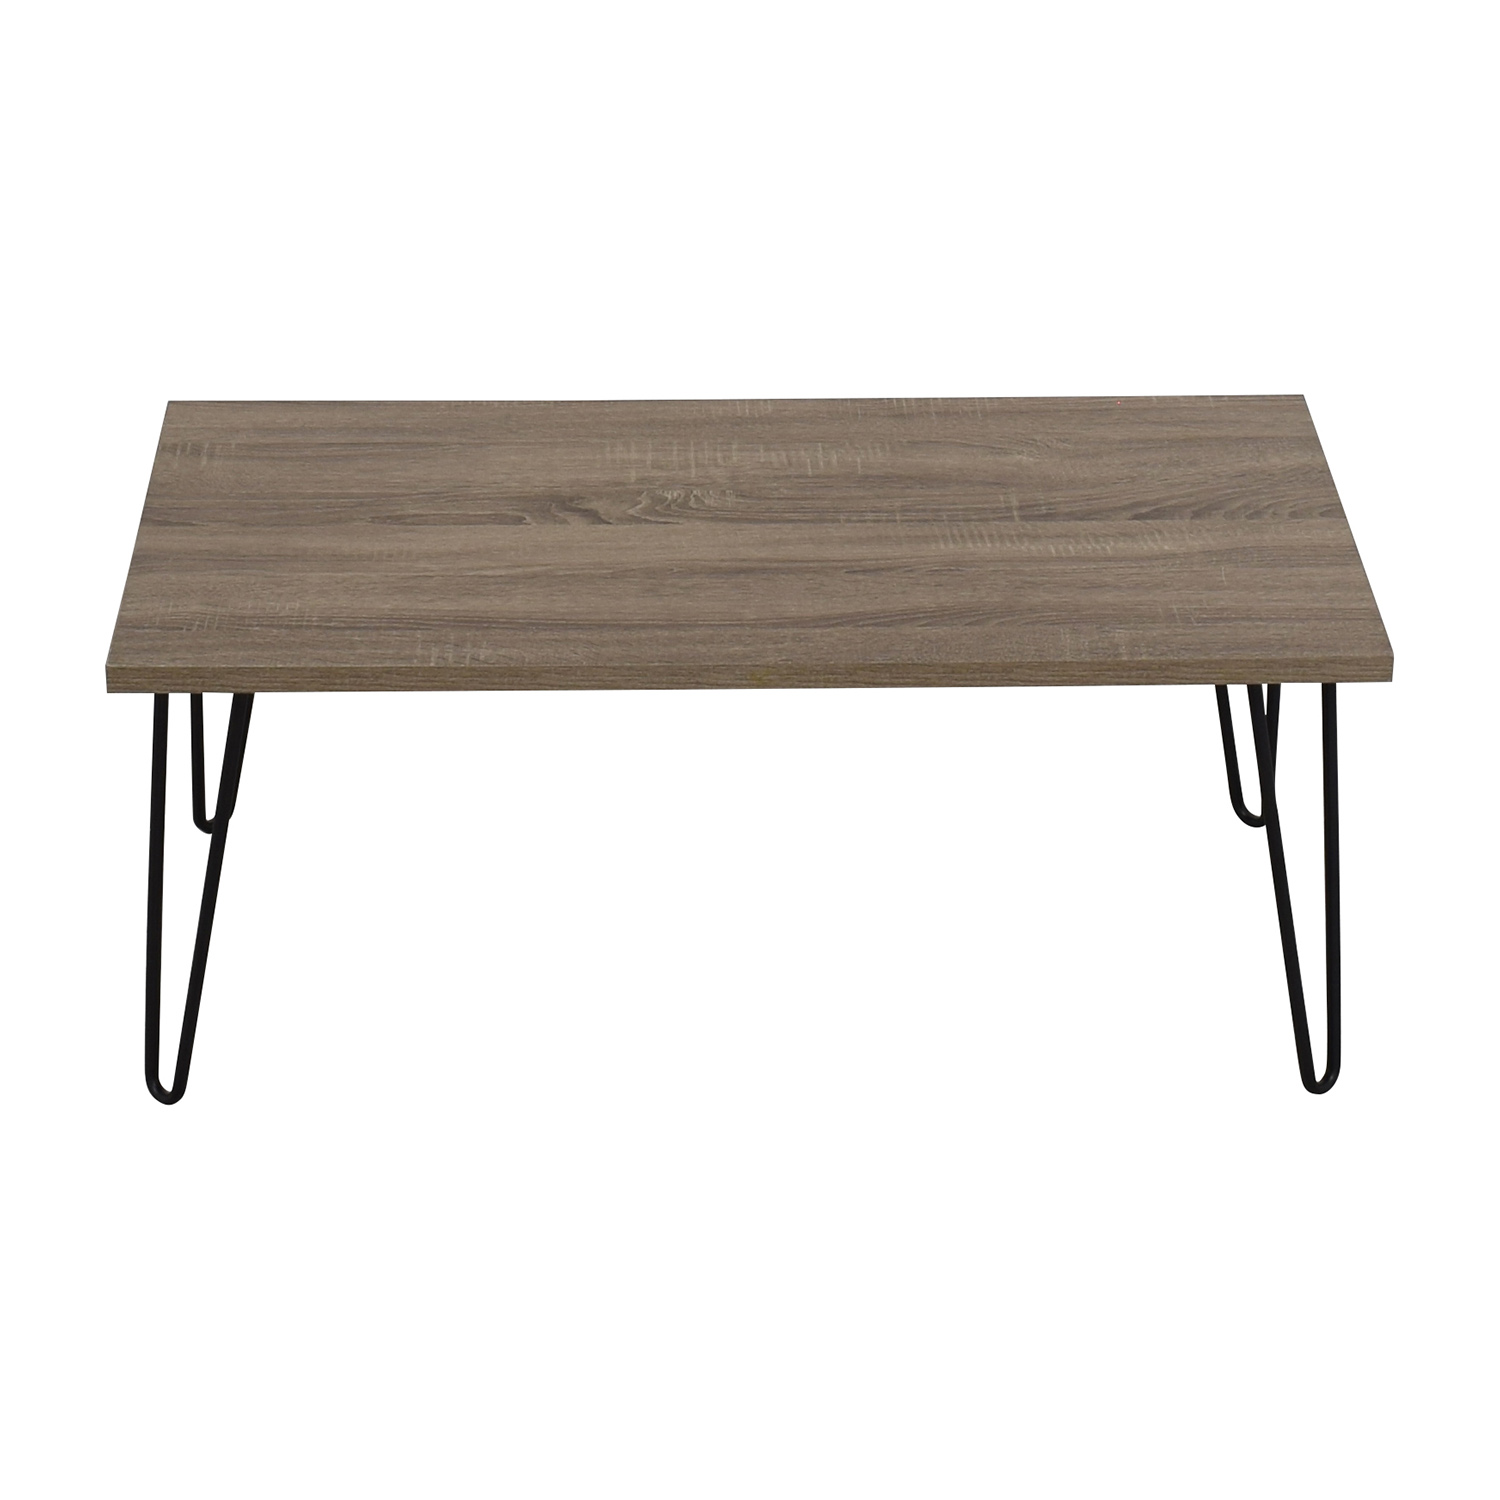 49% OFF Javanese Mahogany and Glass Coffee Table Tables